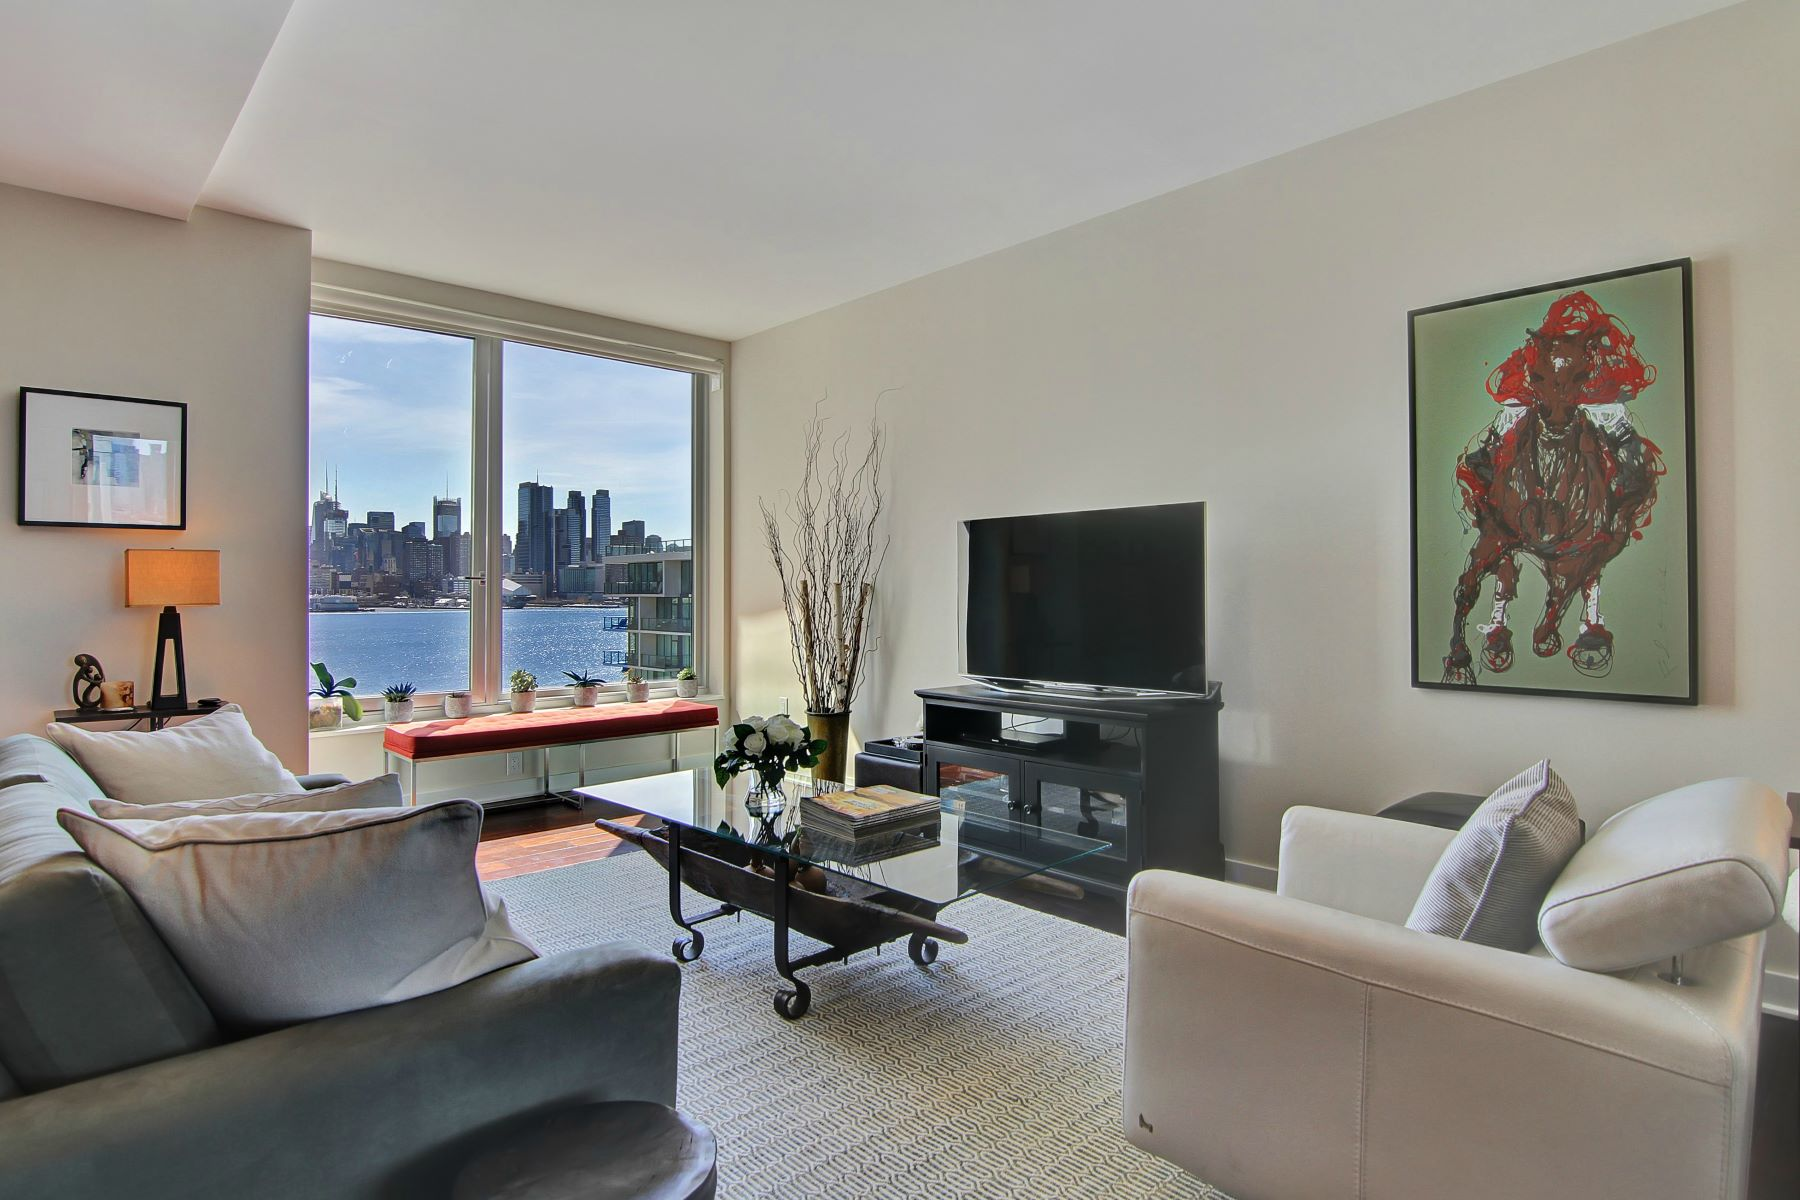 Condominium for Sale at MODERN COLLECTION OF LUXURY 1000 Ave at Port Imperial #615 Weehawken, New Jersey 07086 United States